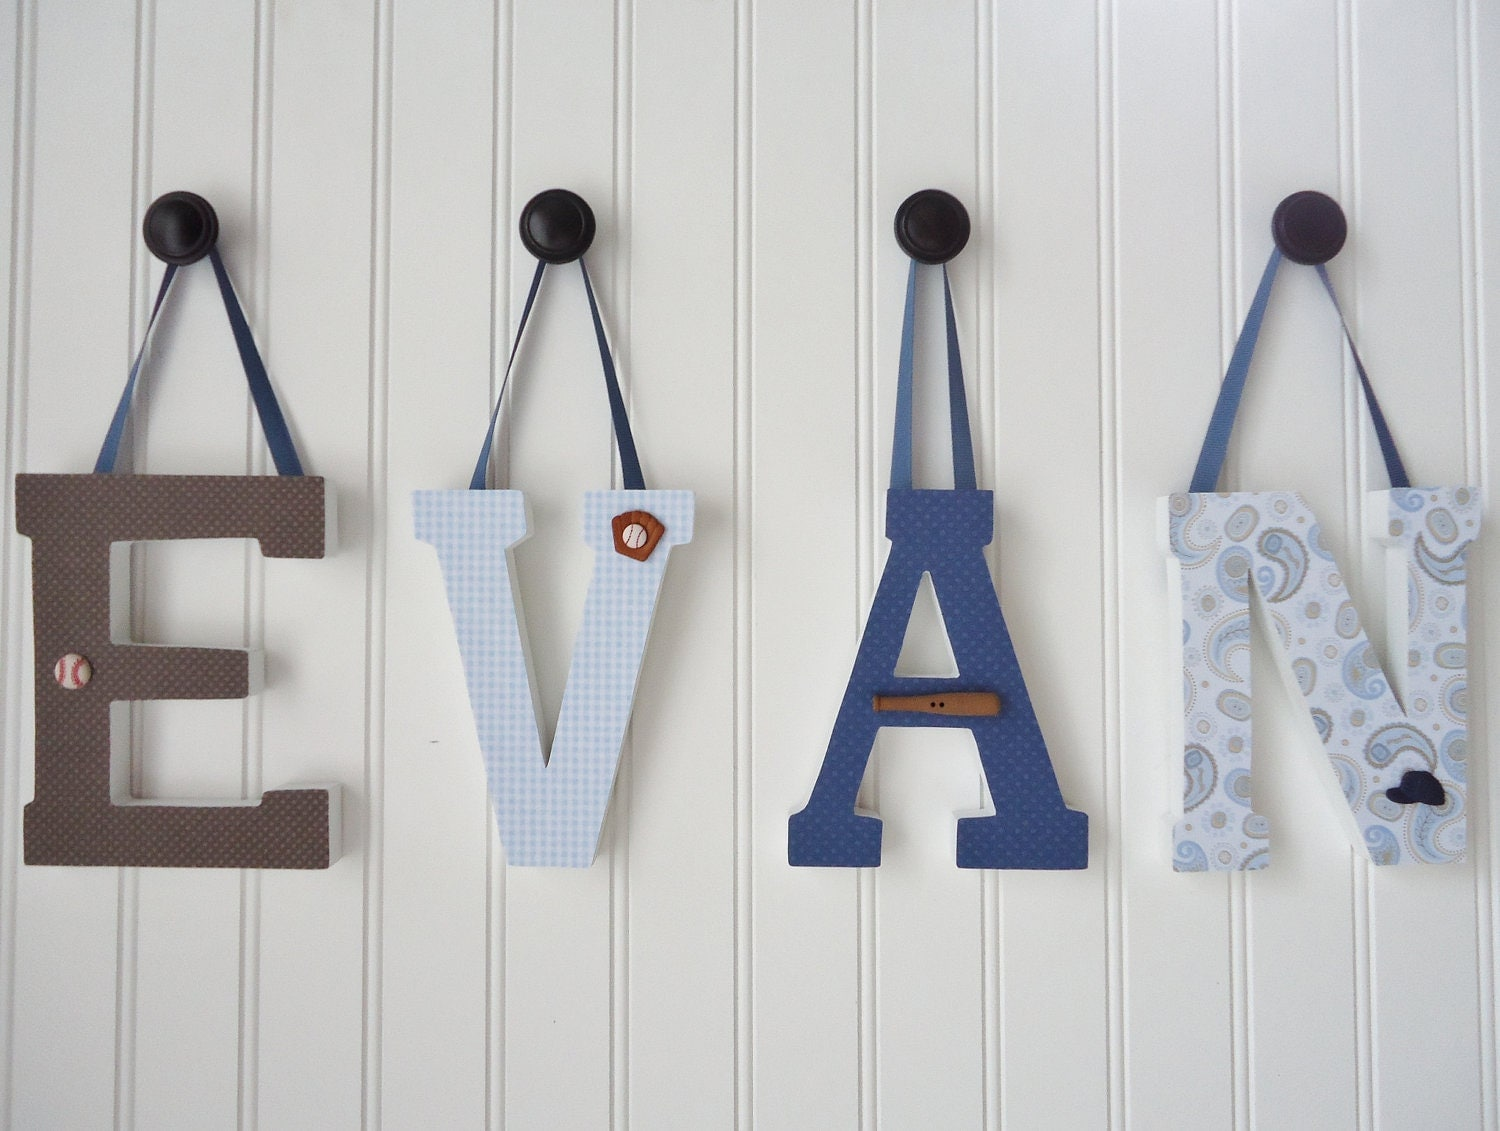 How To Decorate Wooden Letters For Nursery: Wall Decor Name Letters For Boys